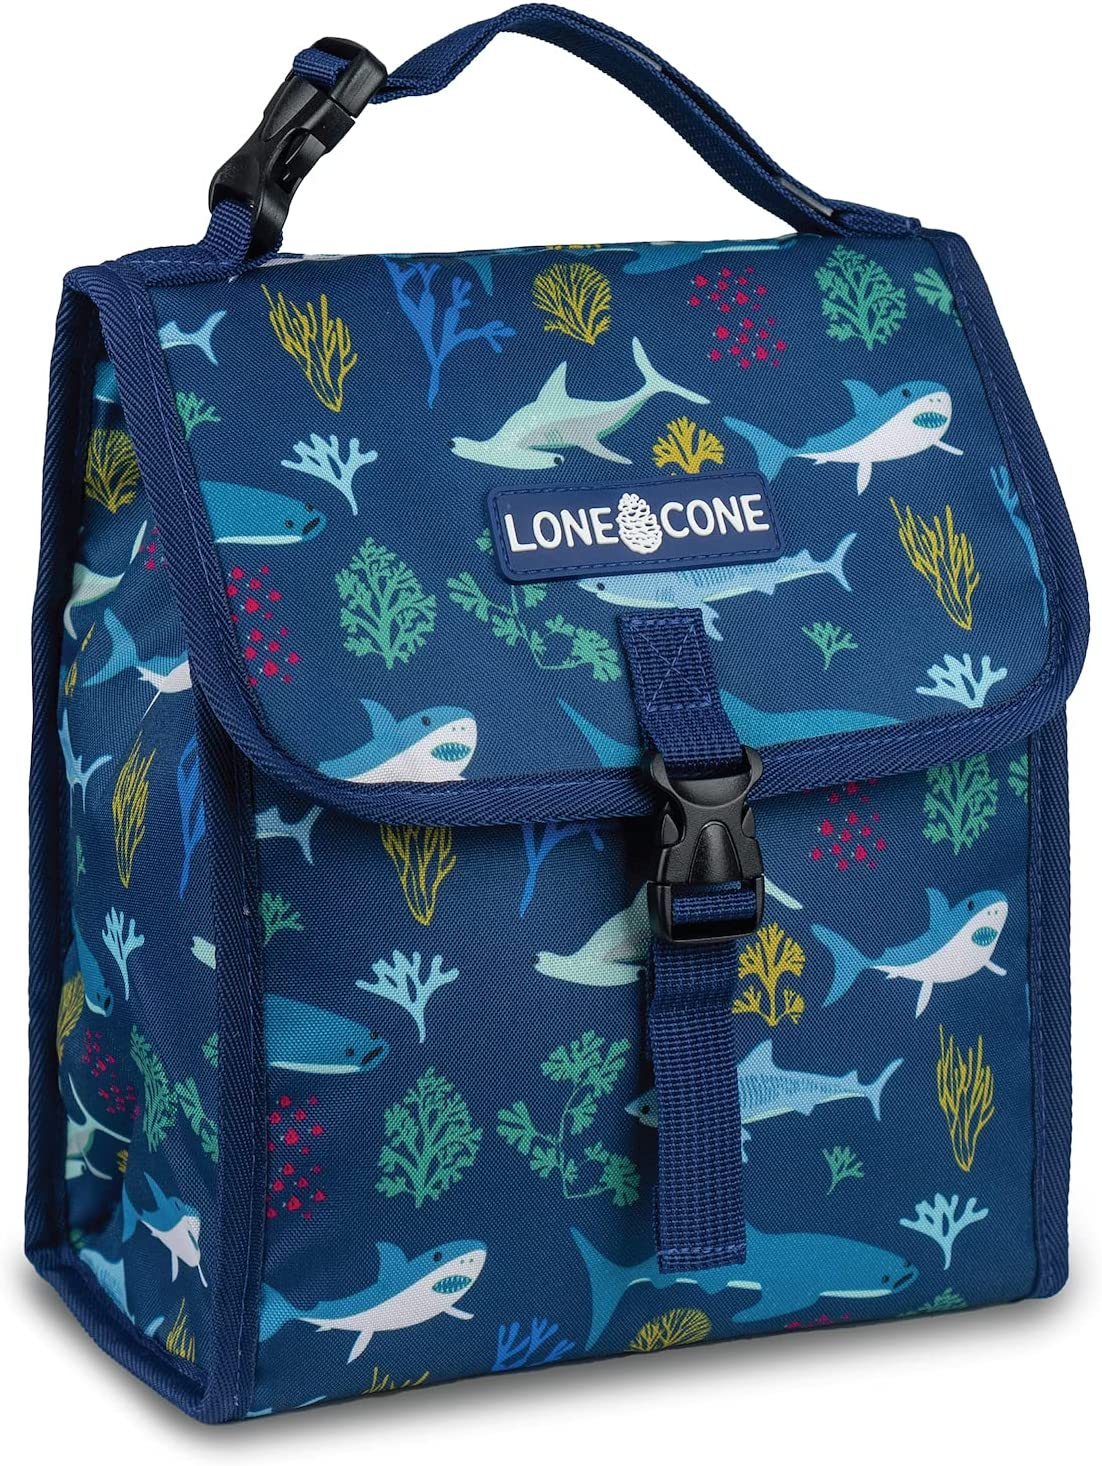 LONECONE Kids' Insulated Fabric Lunchbag for - Free shipping on posting reviews Fun Patterns Boys Today's only